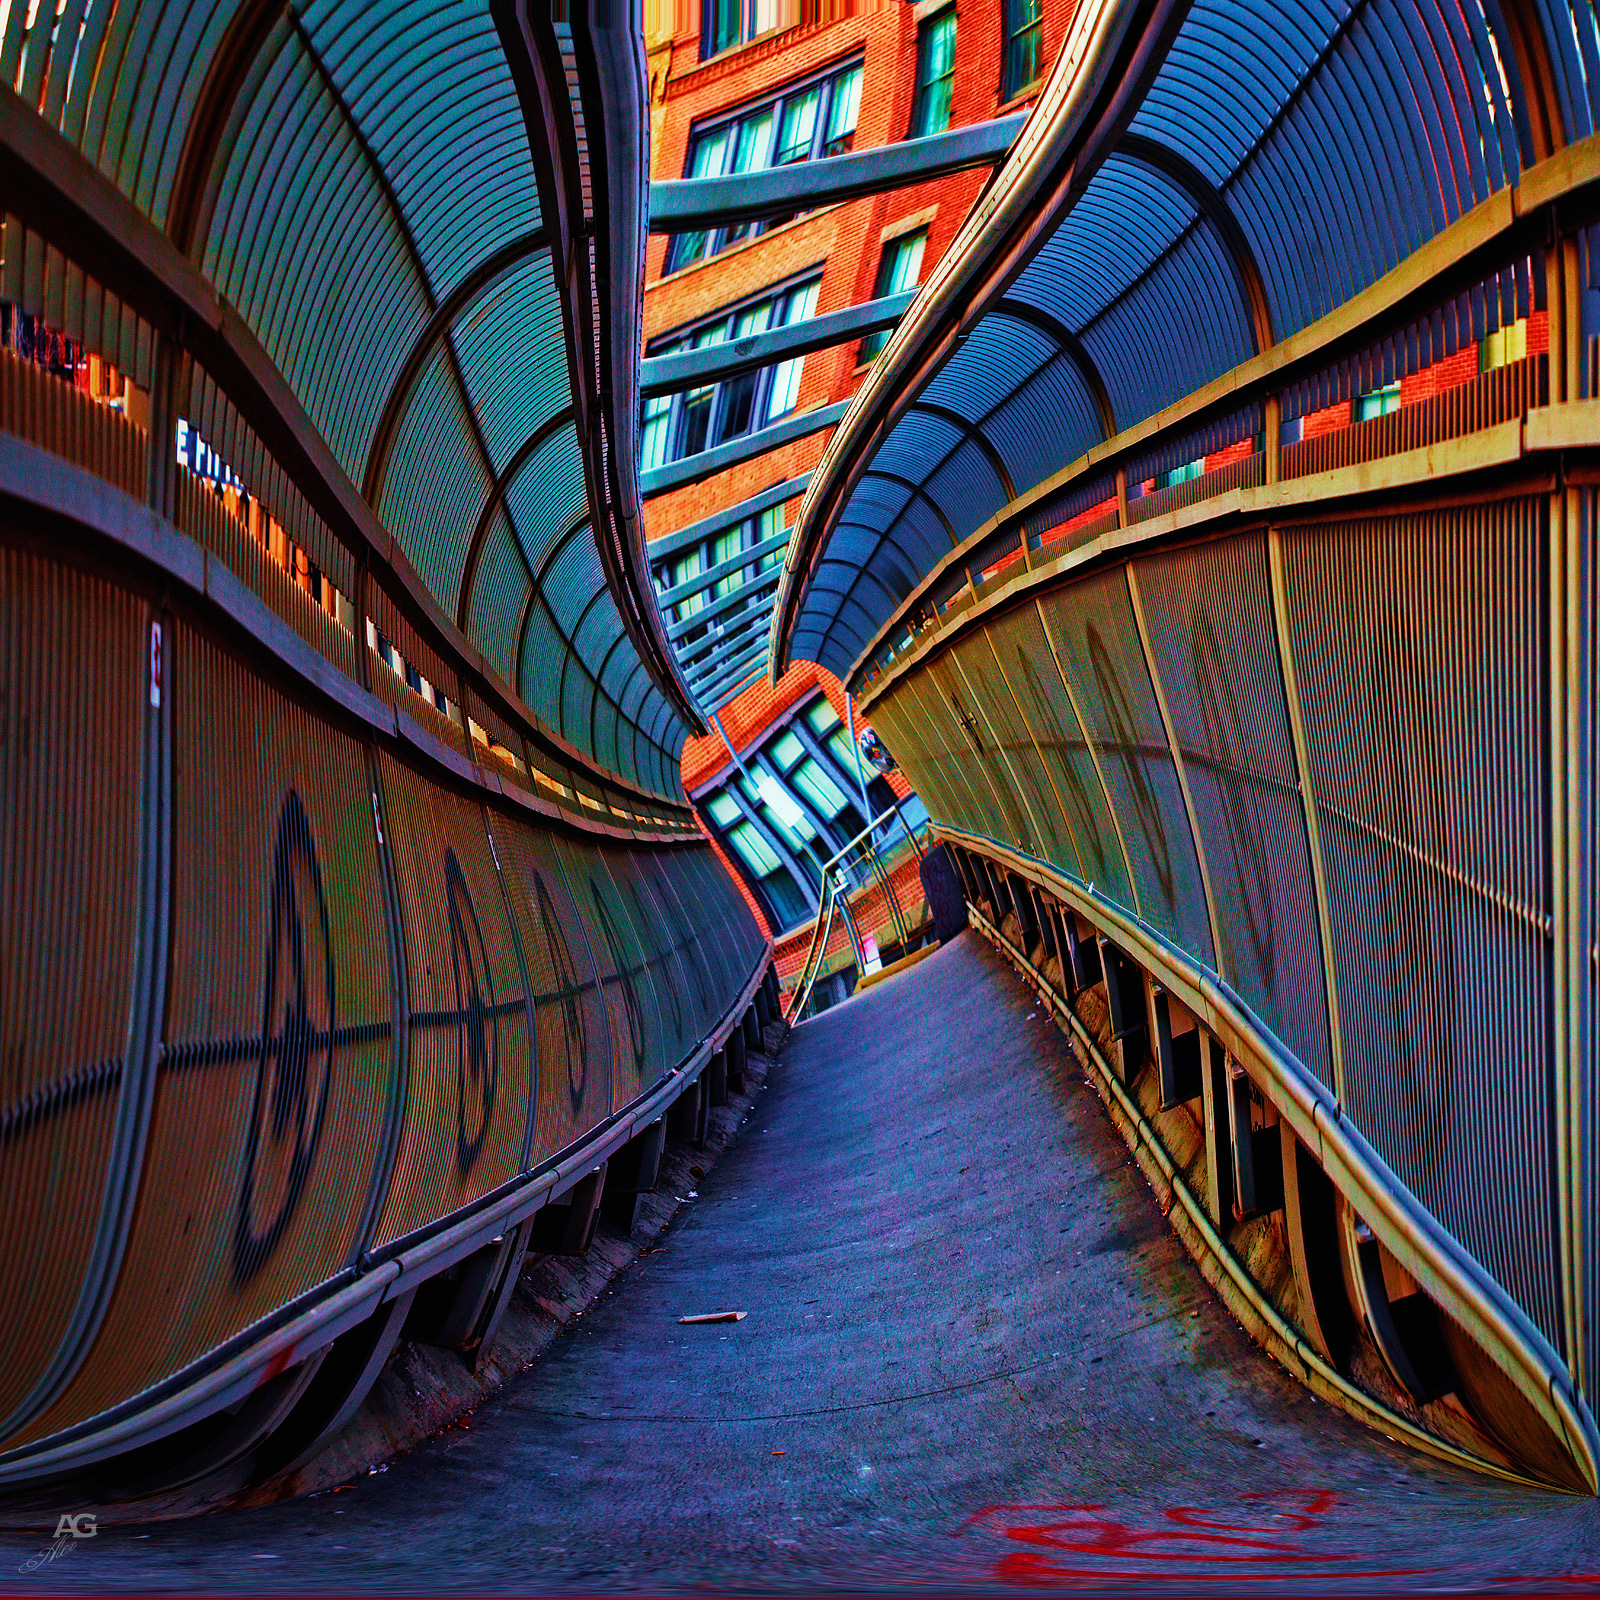 TunnelBridgeInManhattanDowntownNearCanalStreet_unfoldedTwisted_1600